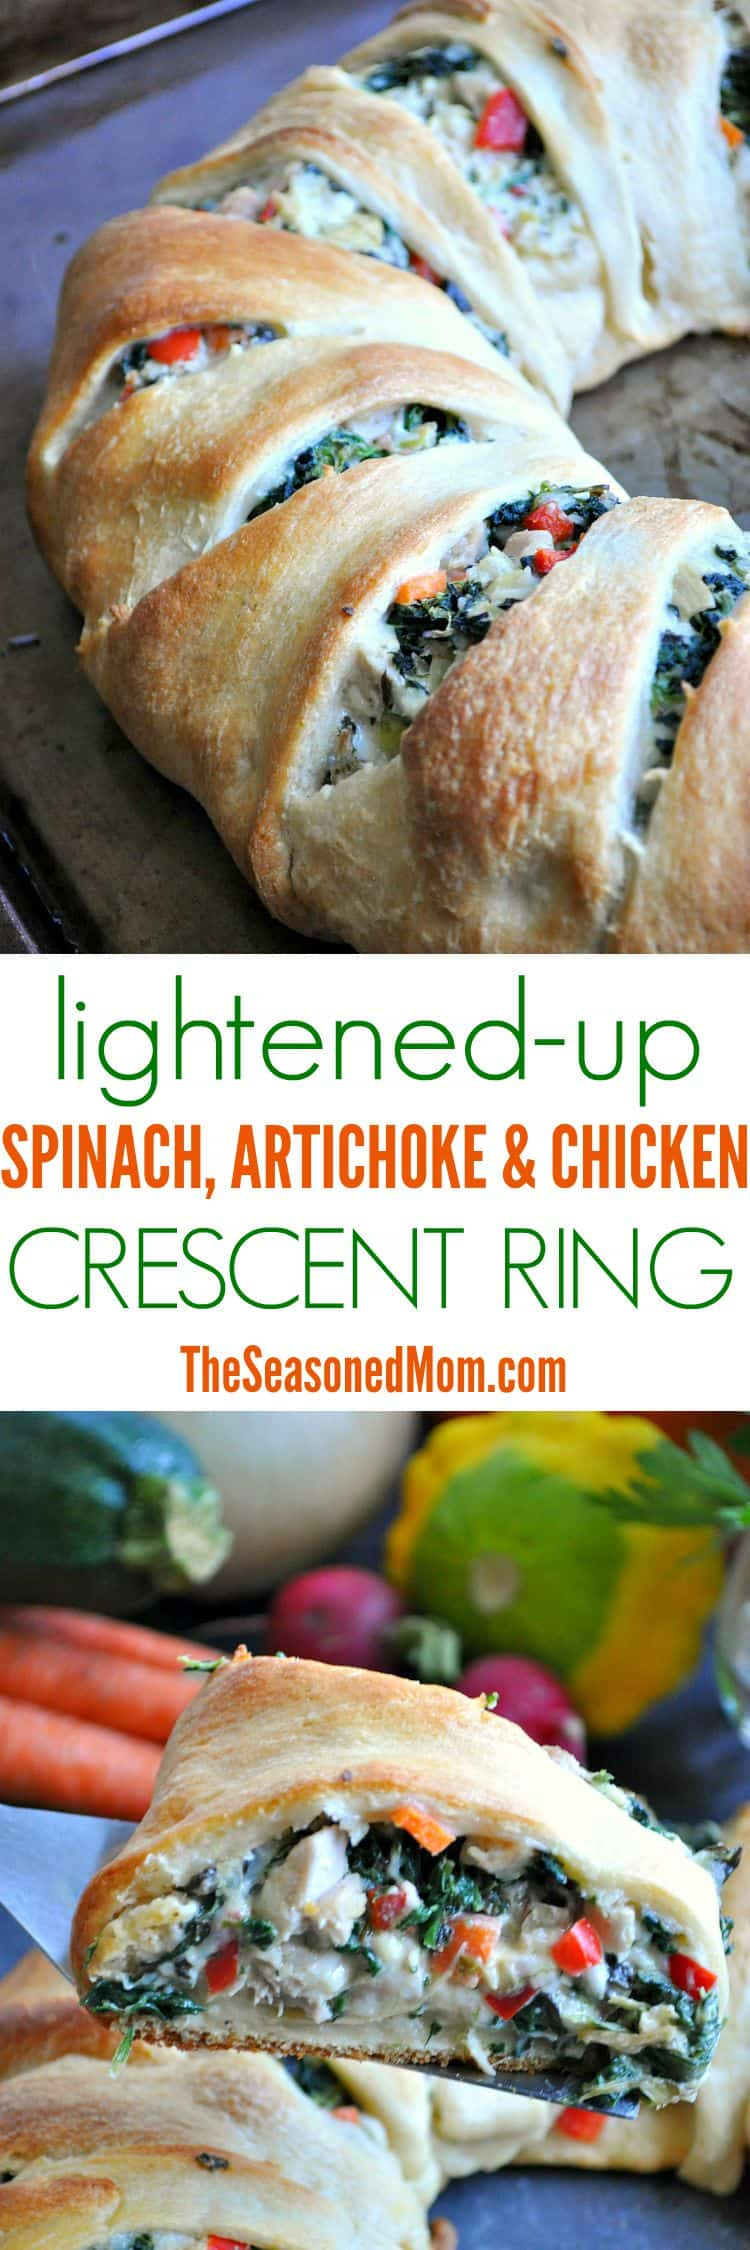 Lightened-Up Spinach Artichoke & Chicken Crescent Ring ...